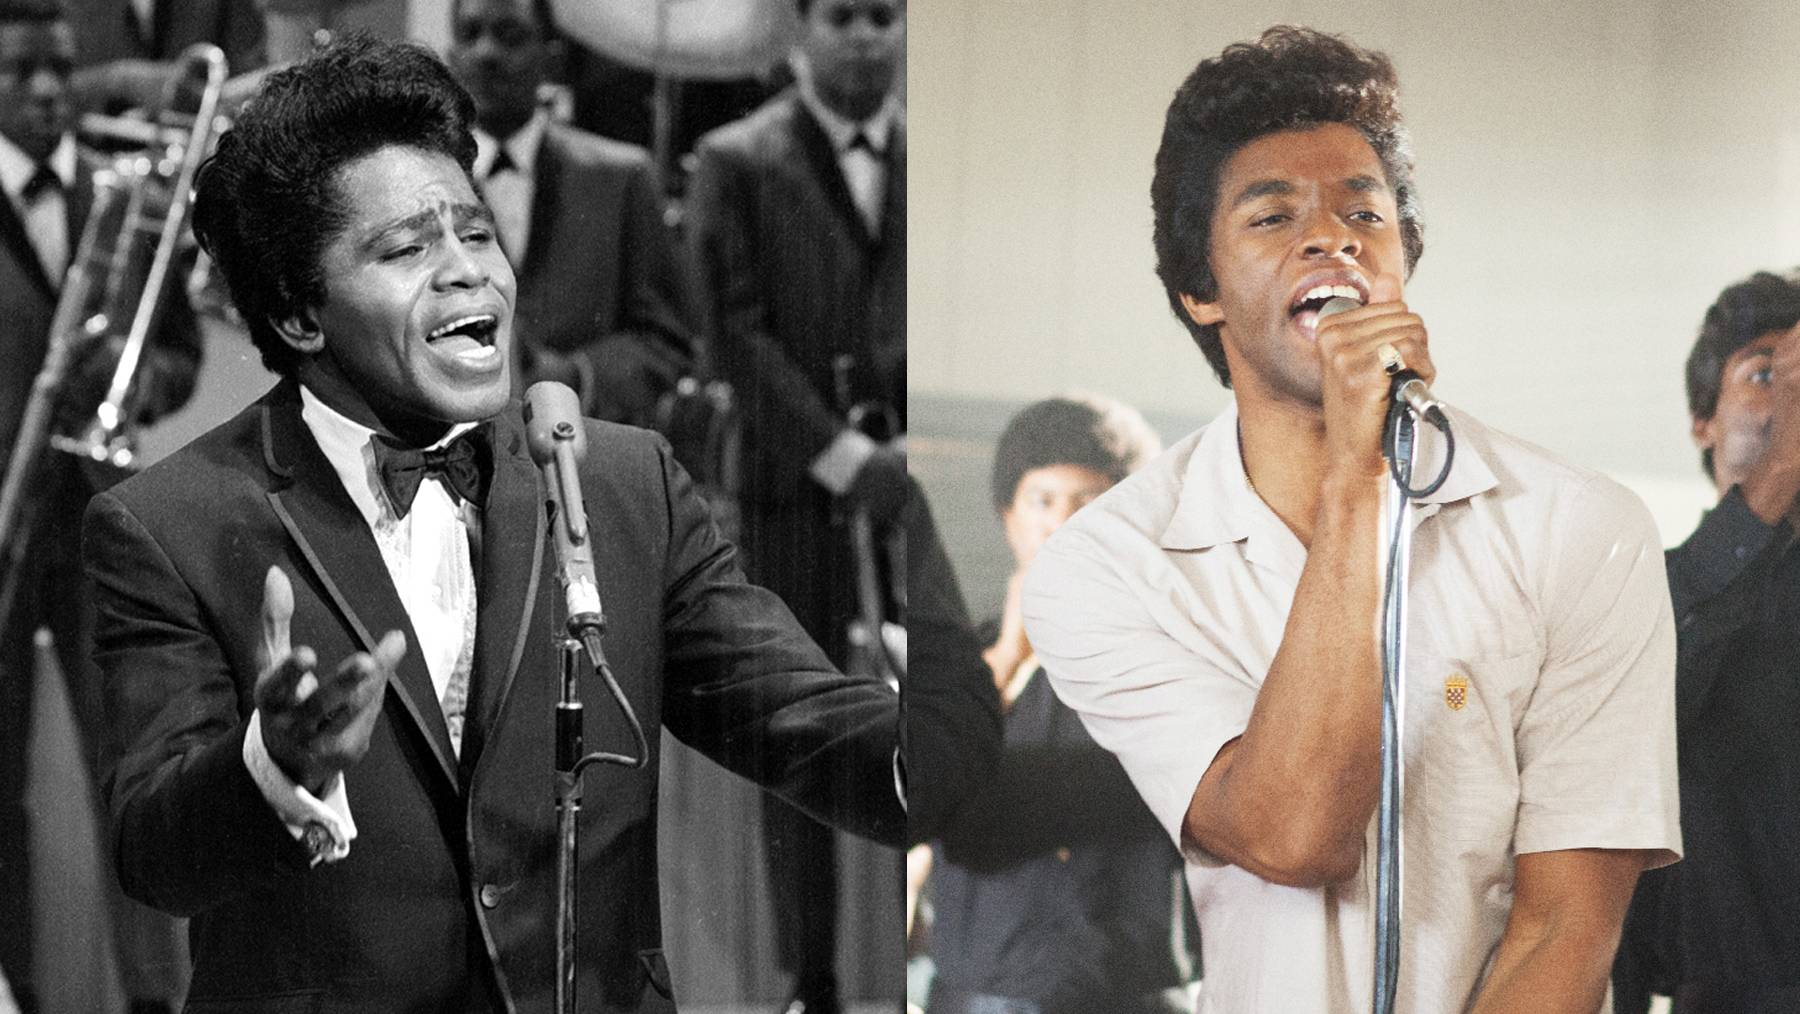 """Get on Up - The life story of the Godfather of Soul, James Brown, hit theaters Aug. 1, 2014, withChadwick Bosemancast in the starring role alongside Viola Davis, Octavia Spencerand more. It opened in third place at the box office, grossing more than its $30 million budget. Say it loud,""""Black and proud.""""(Photos from left: CBS /Landov, Universal Pictures)"""